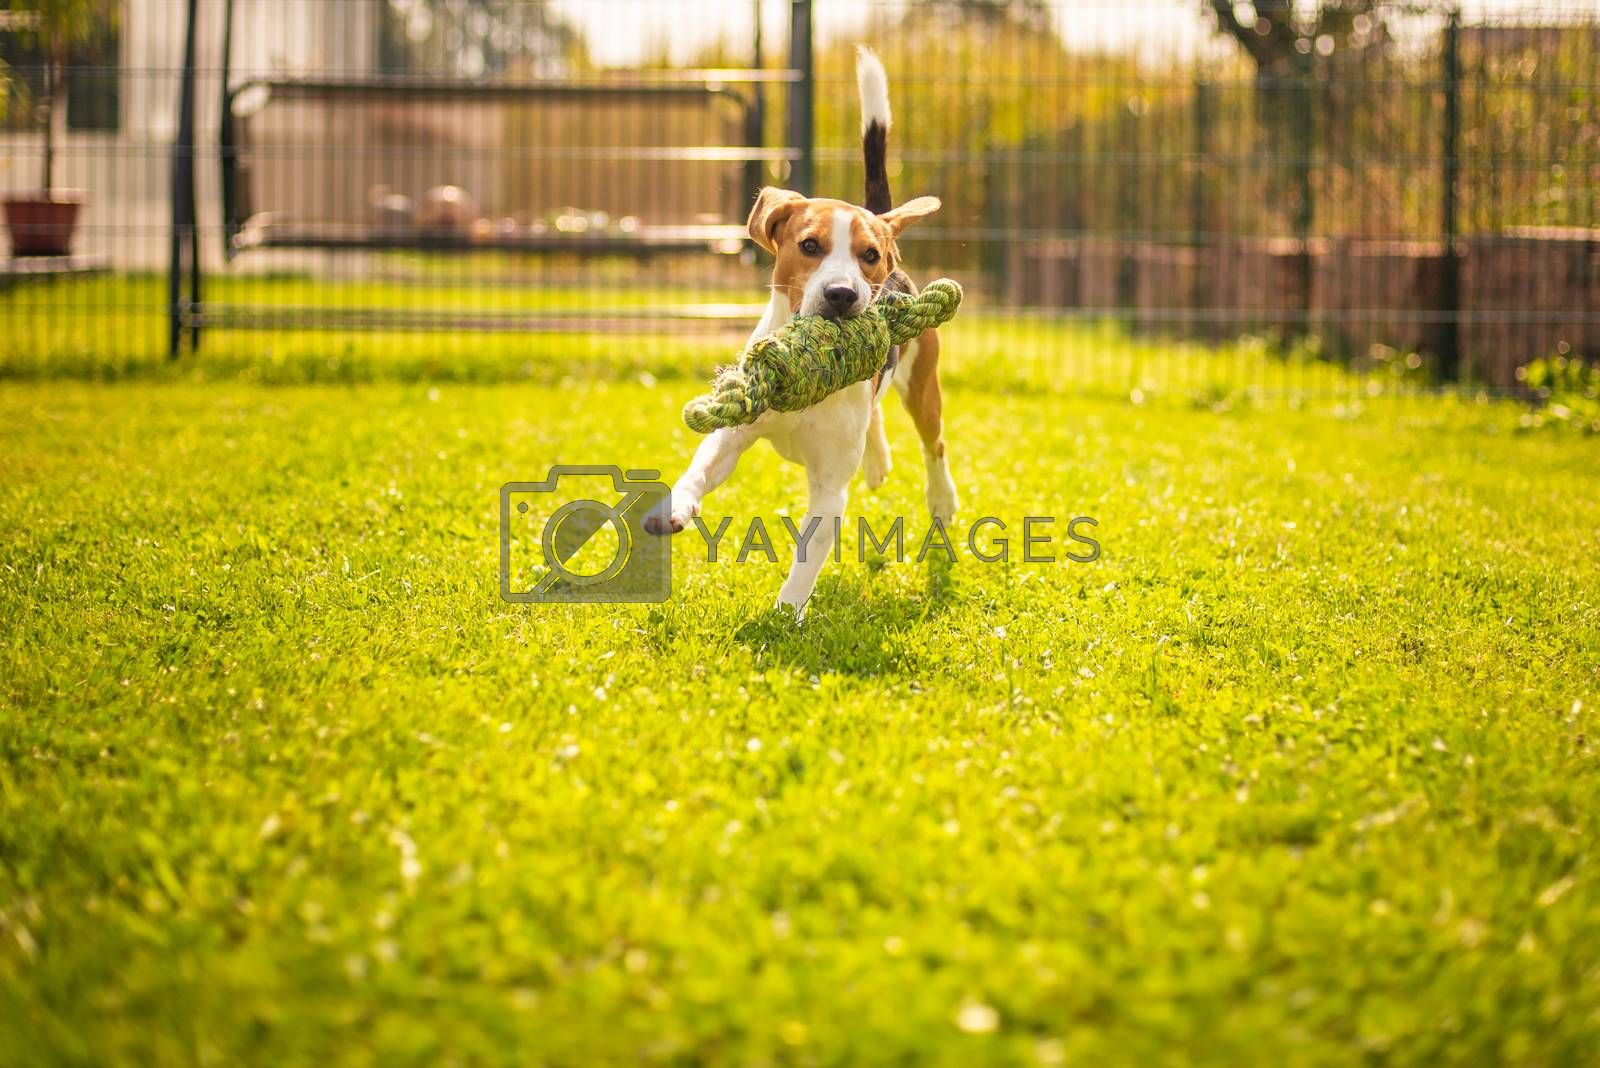 Beagle dog fun in garden outdoors run and jump with knot rope towards camera. Sunny summer day